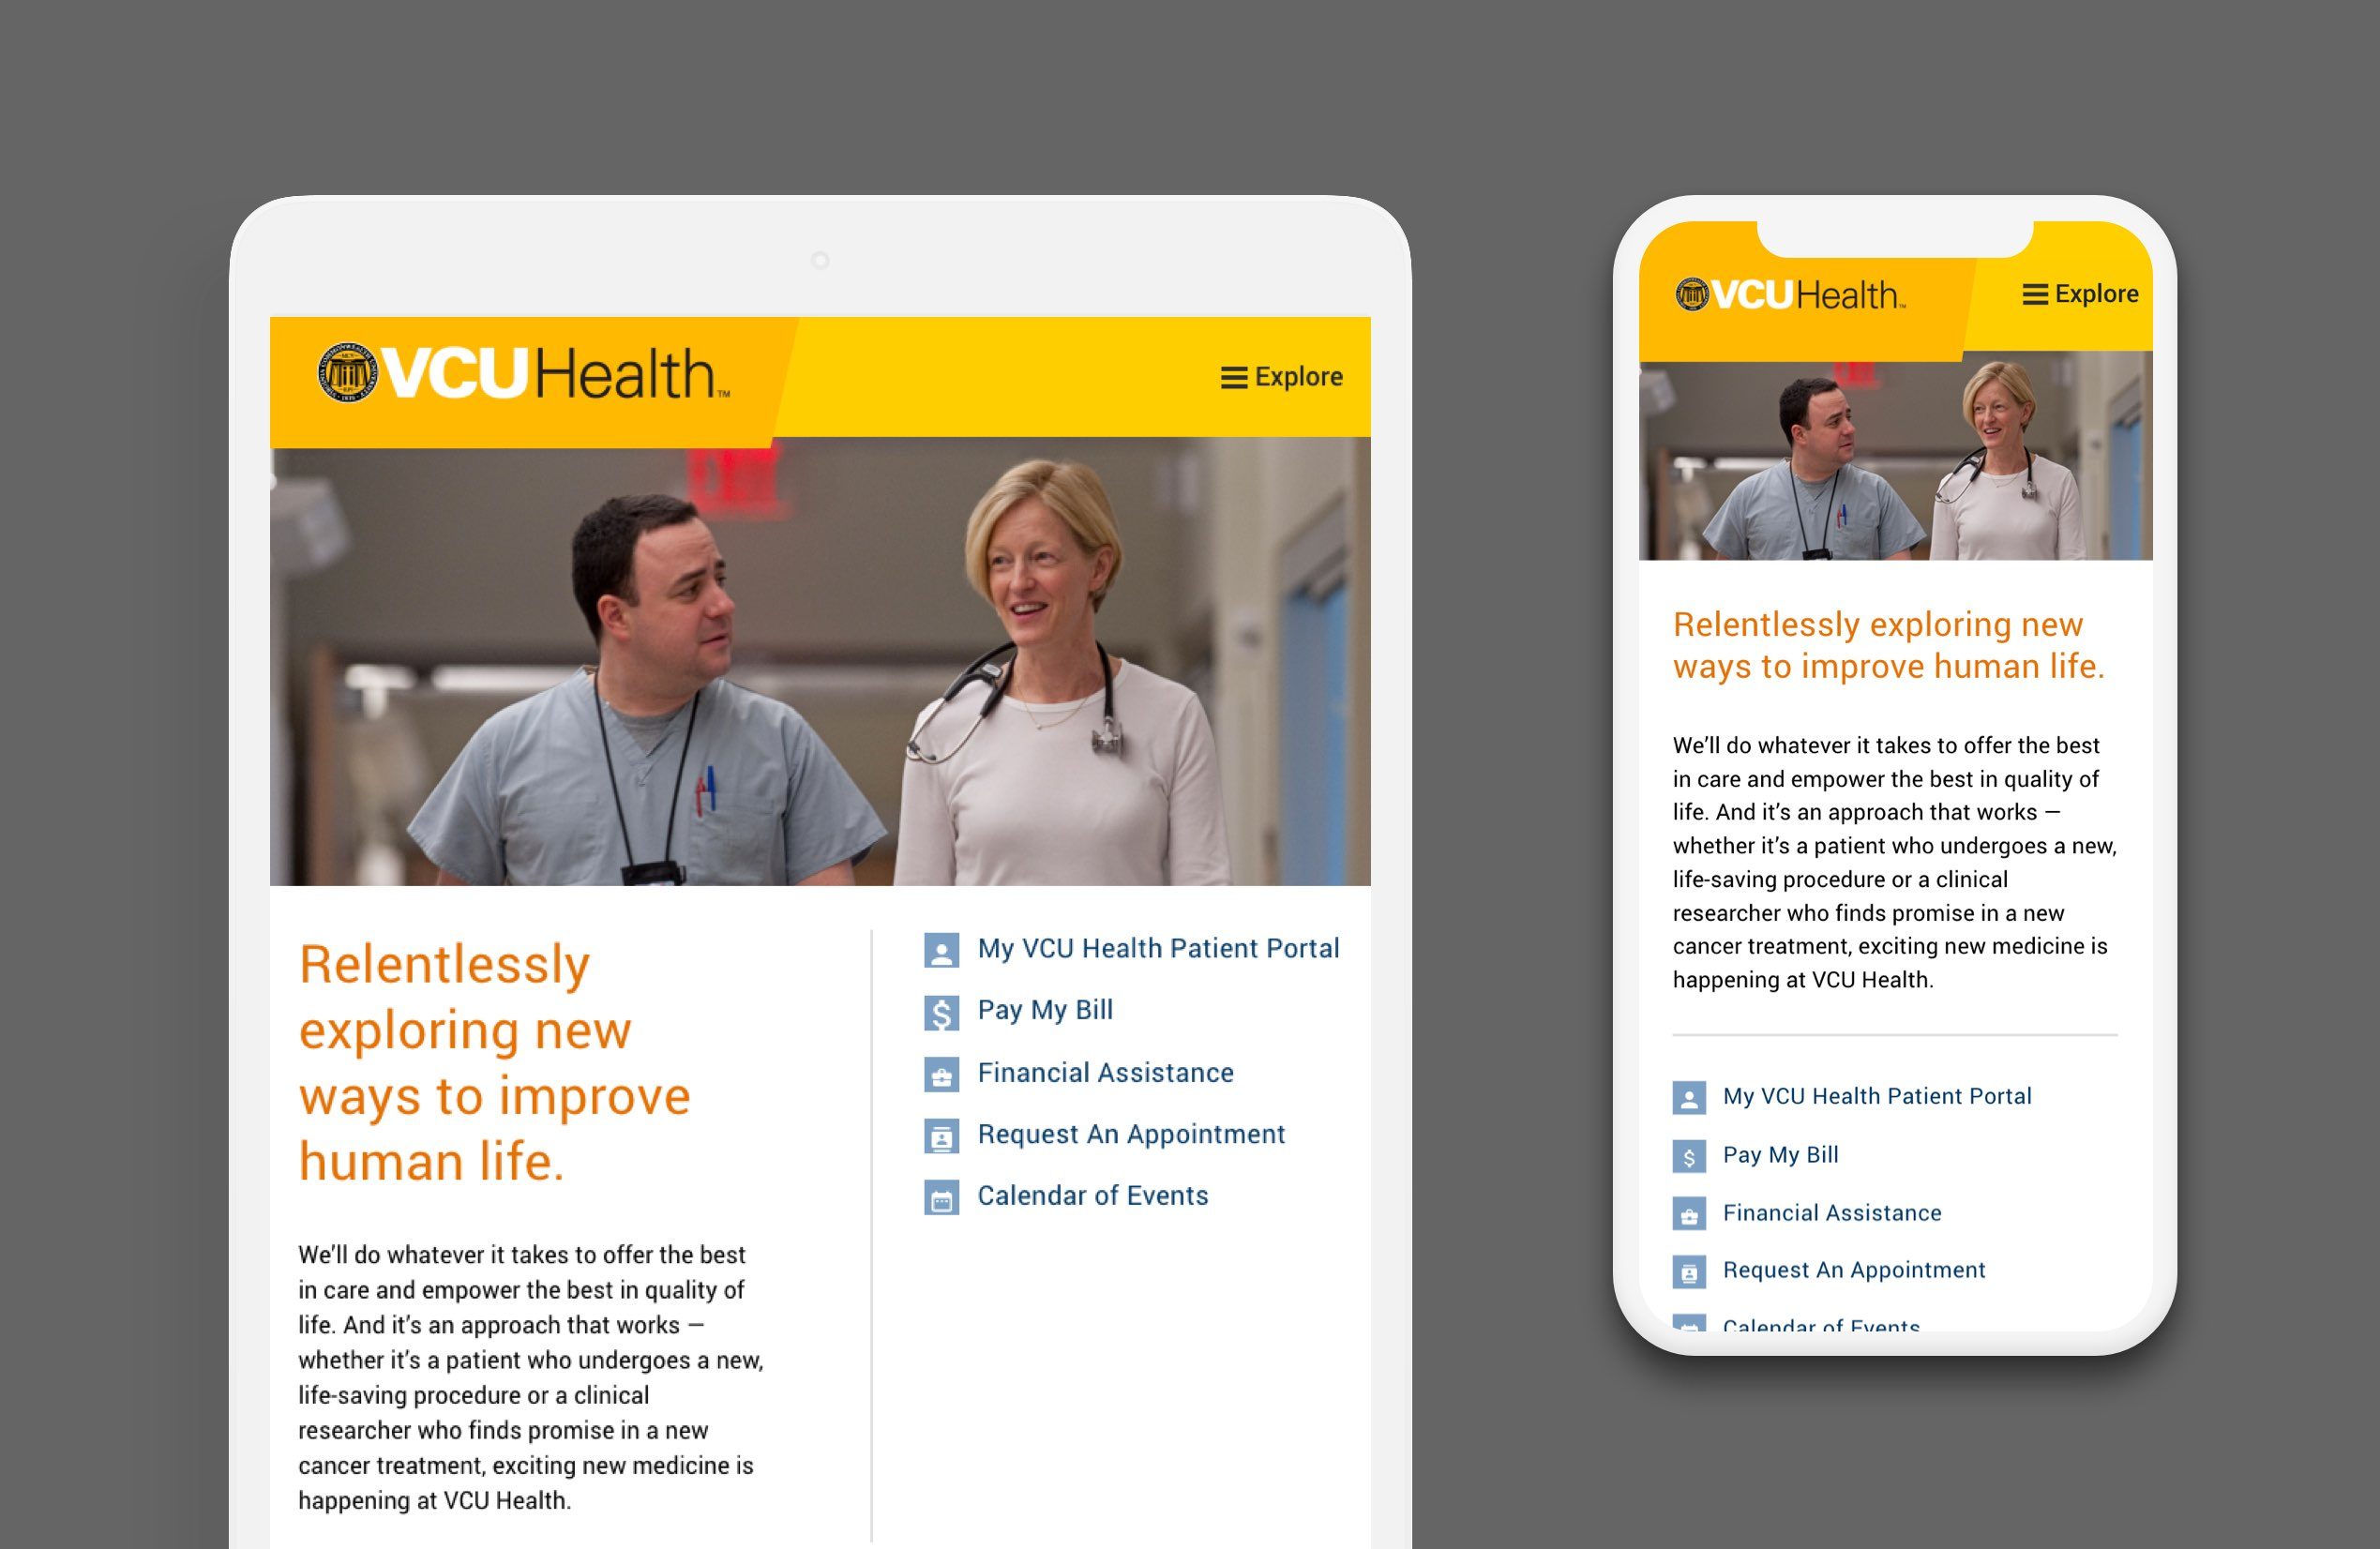 VCU Tablet and Mobile Image 2